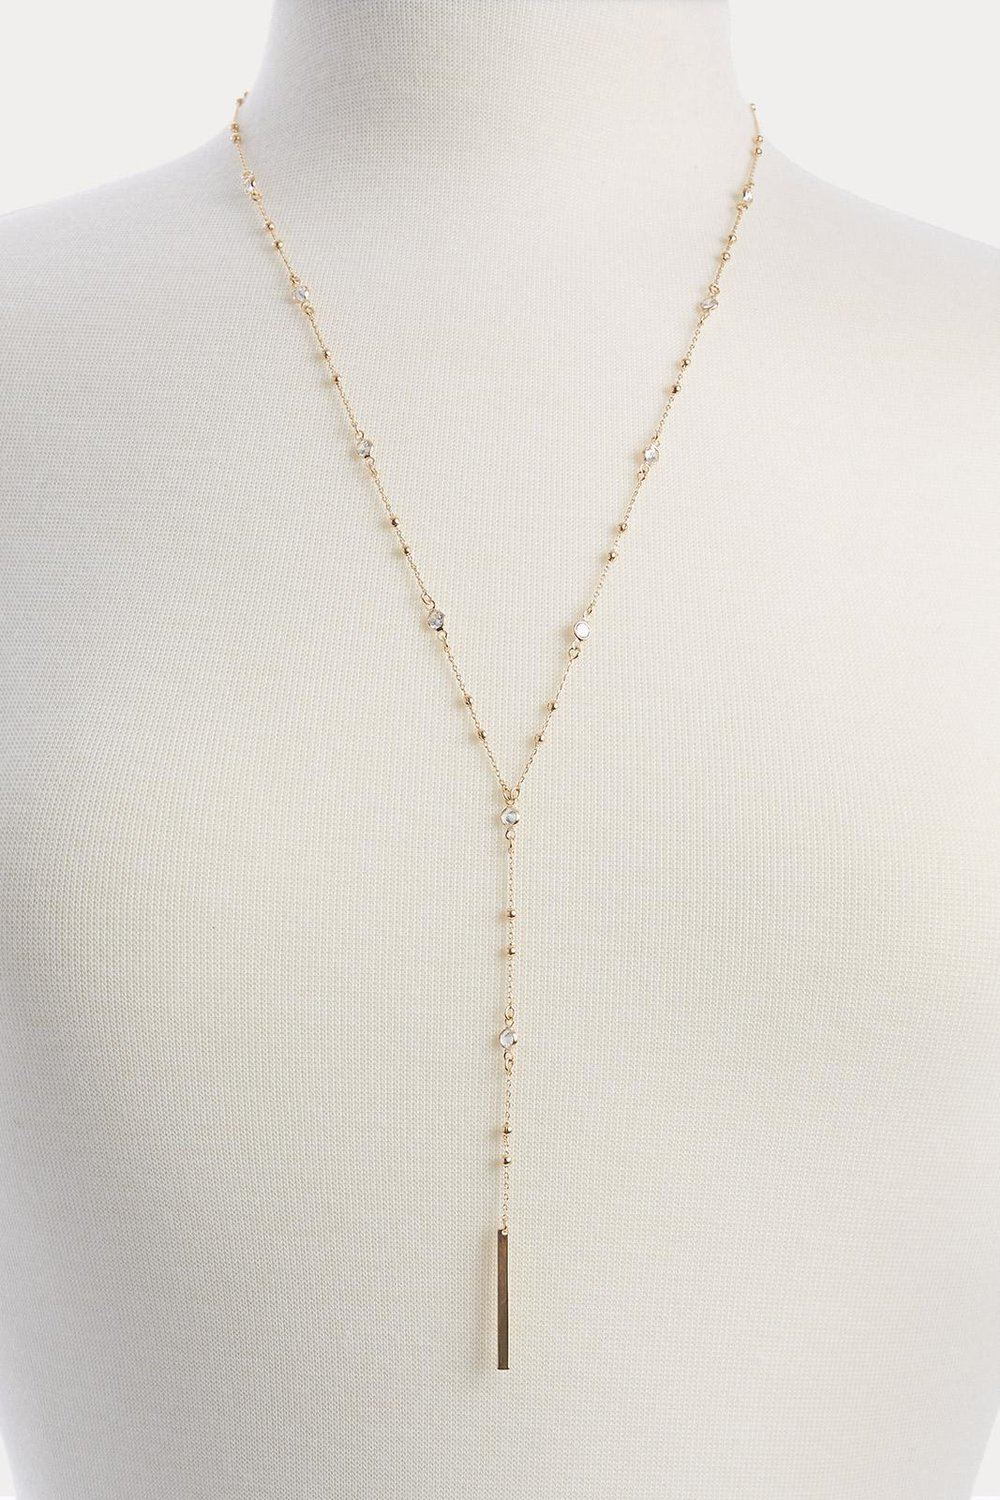 DELICATE GOLD NECKLACE WITH STONES